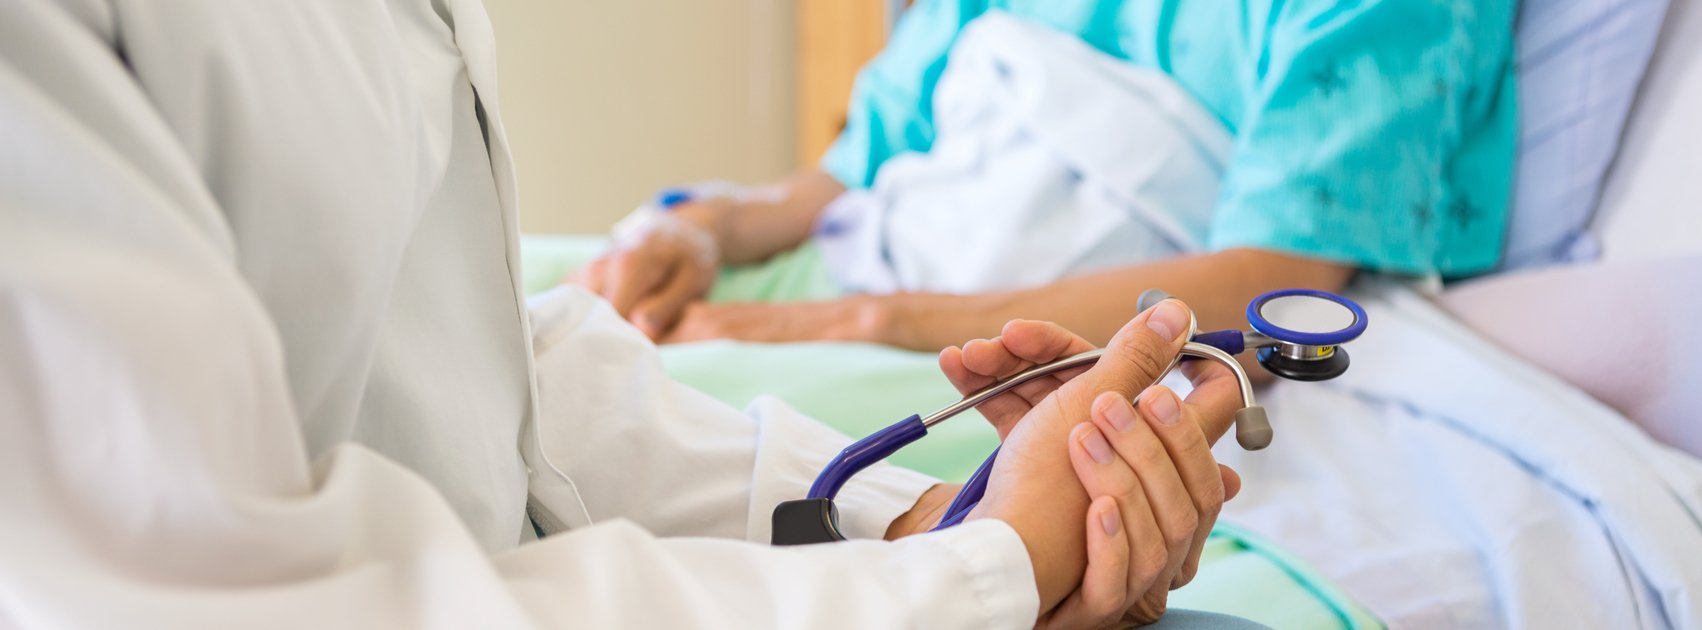 What are Healthcare Aquired Infections (HAIs) and How Can You Prevent Them?